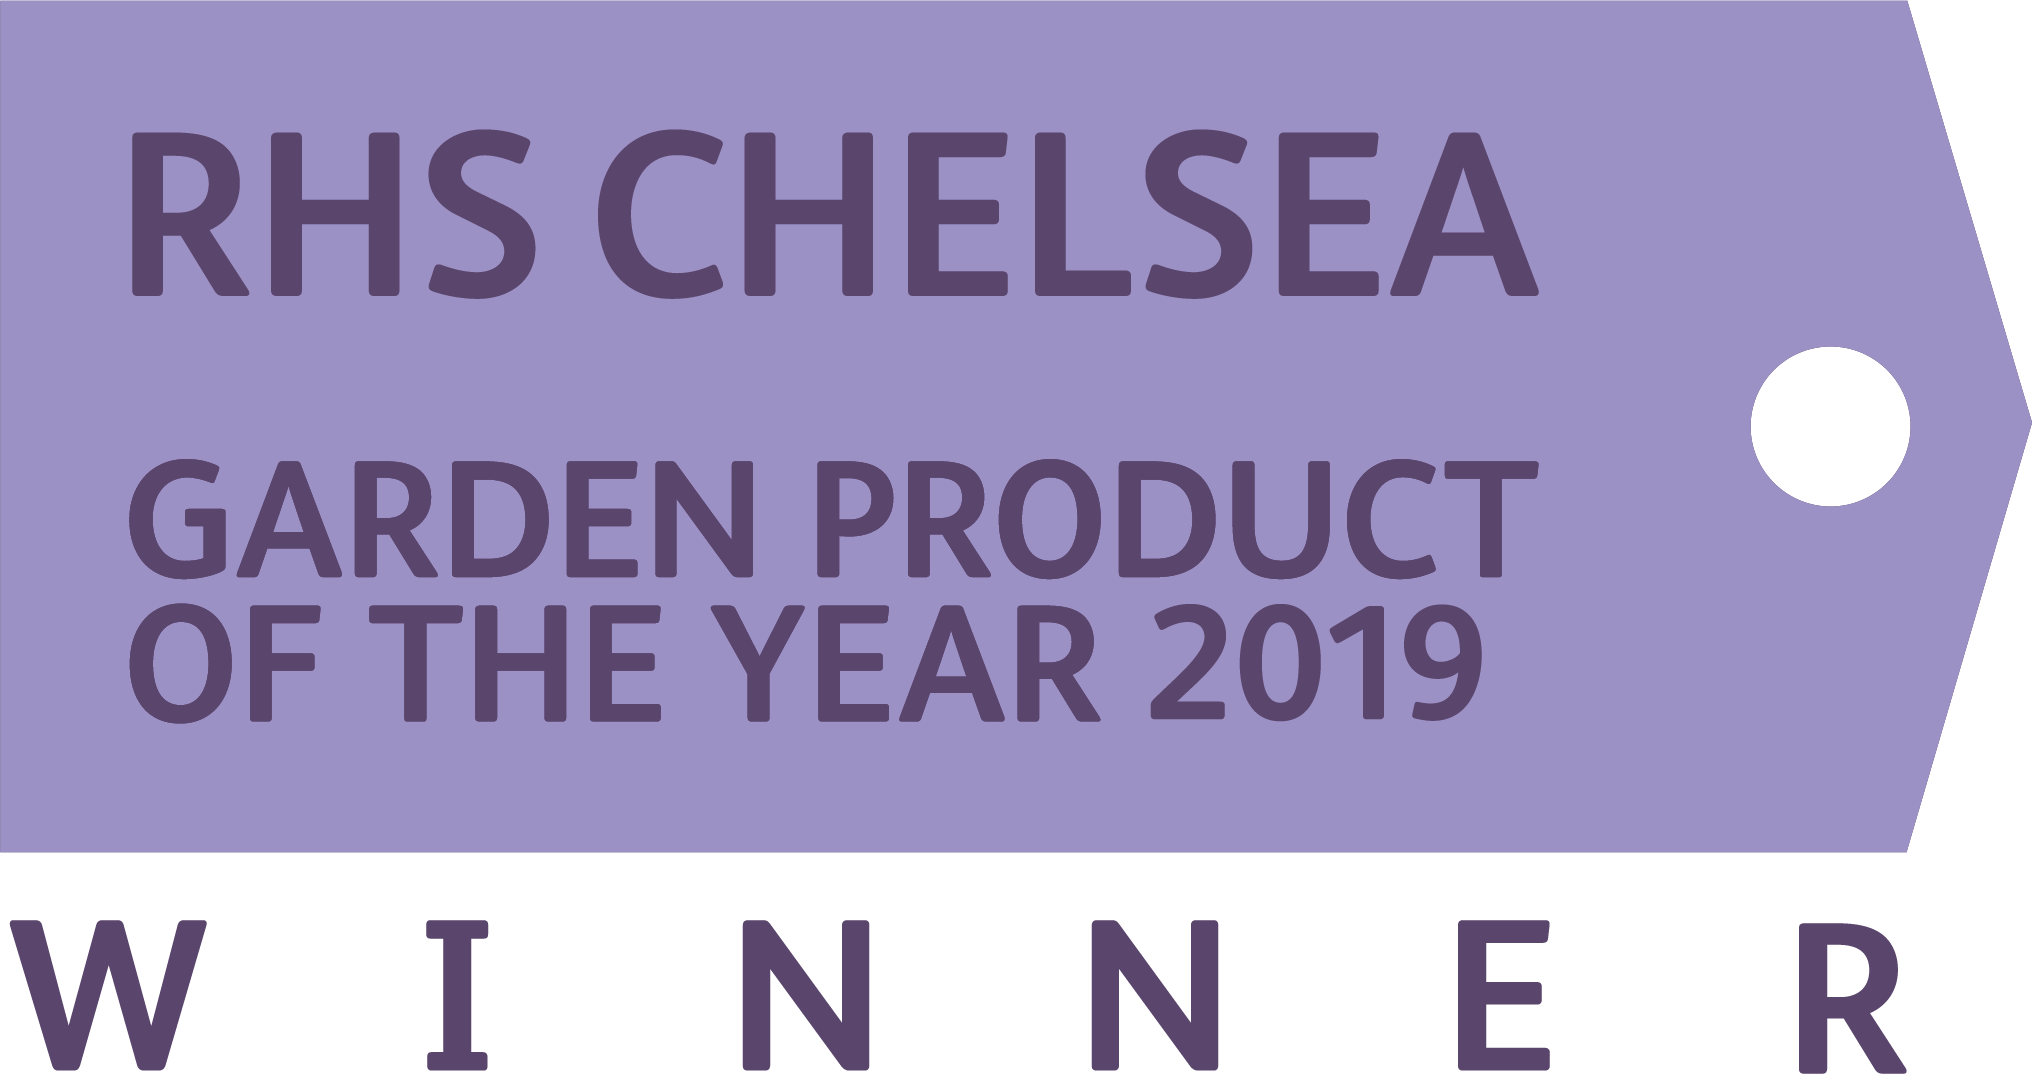 HOTBIN Mini RHS Chelsea Garden Product of the Year 2019